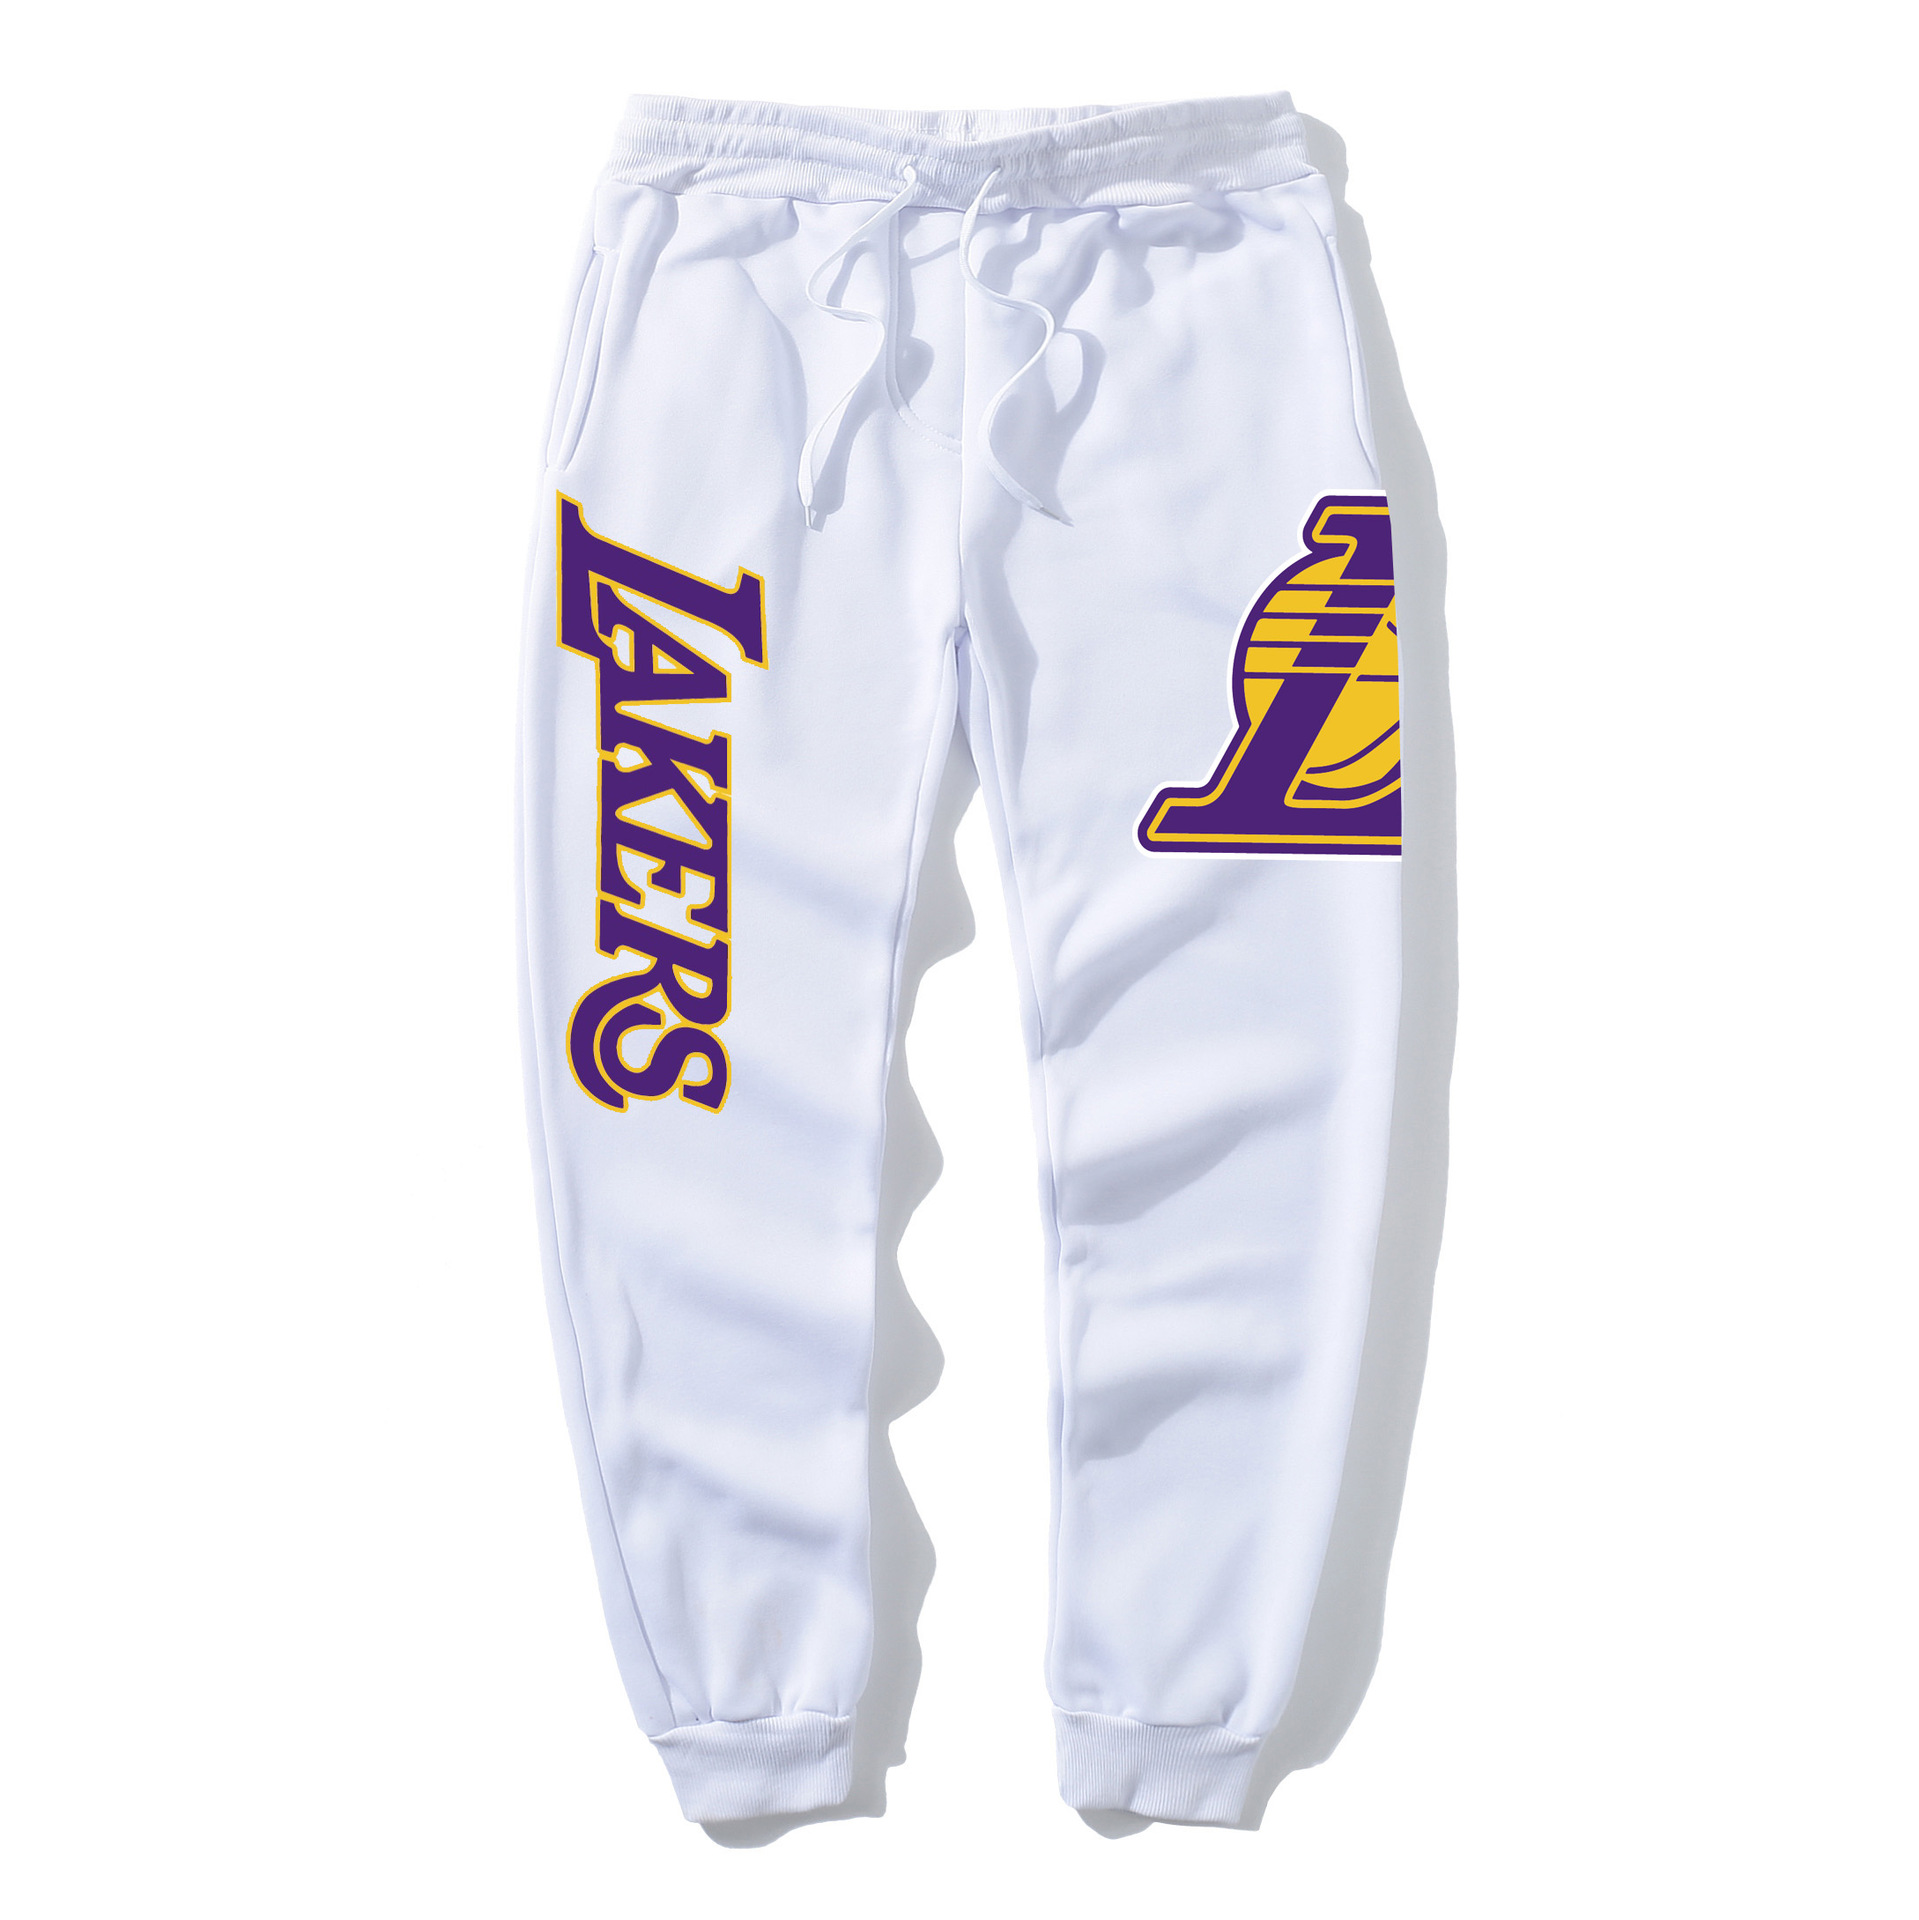 2021 Basketball Fans Fashion Printed Loose Casual Pants for Fans S-3XL Mens Clothing  Cargo Pants  Japanese Fashion